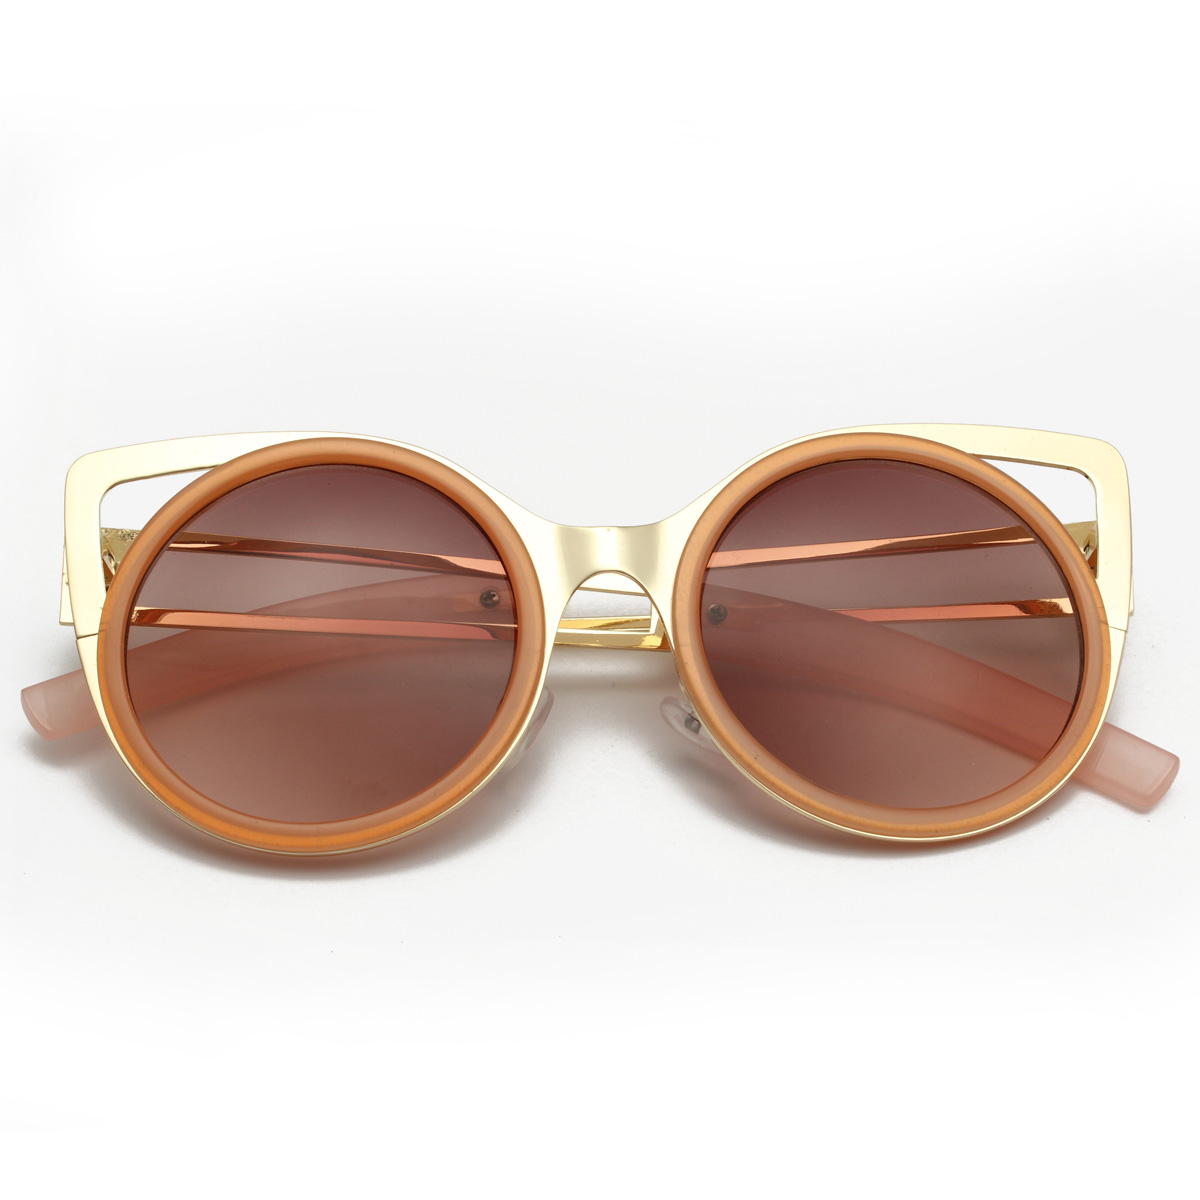 a45fe72e4e8 Fashion New Women Retro Vintage Shades Oversized Designer Cat Eye Sunglasses  US - Walmart.com